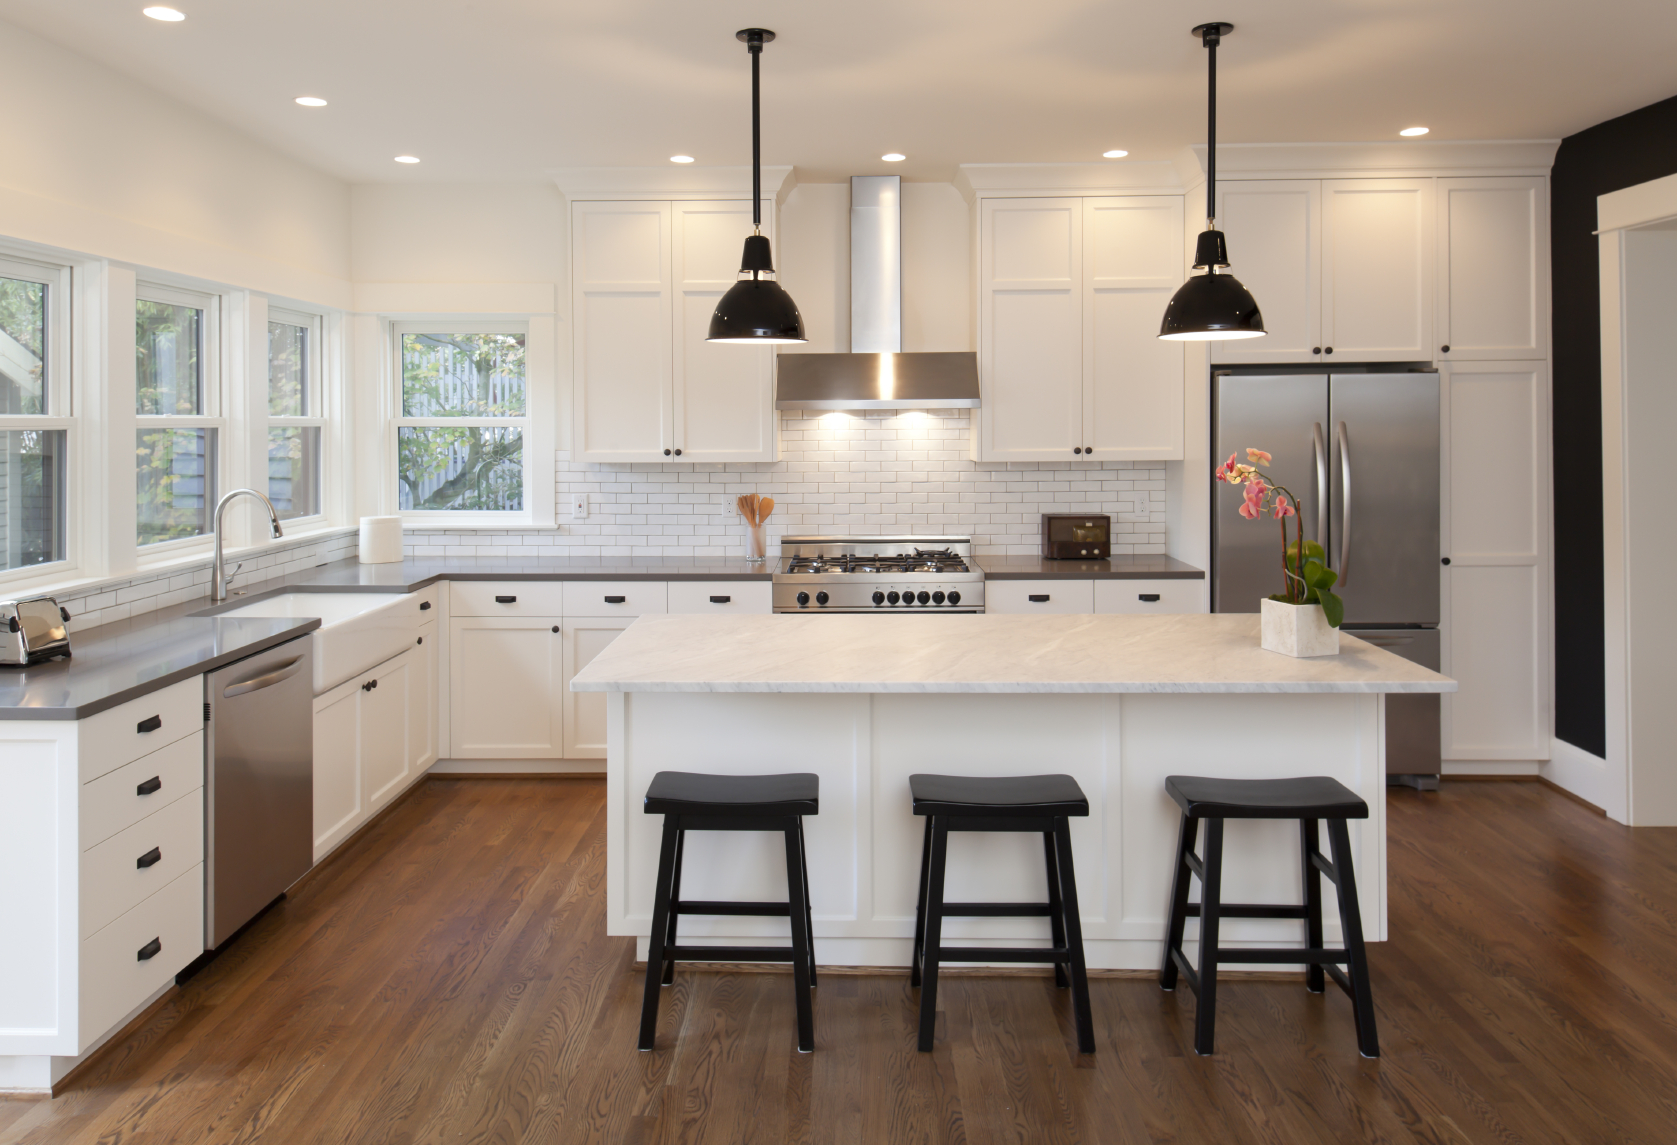 The dos and don 39 ts of kitchen remodeling huffpost for I kitchens and renovations